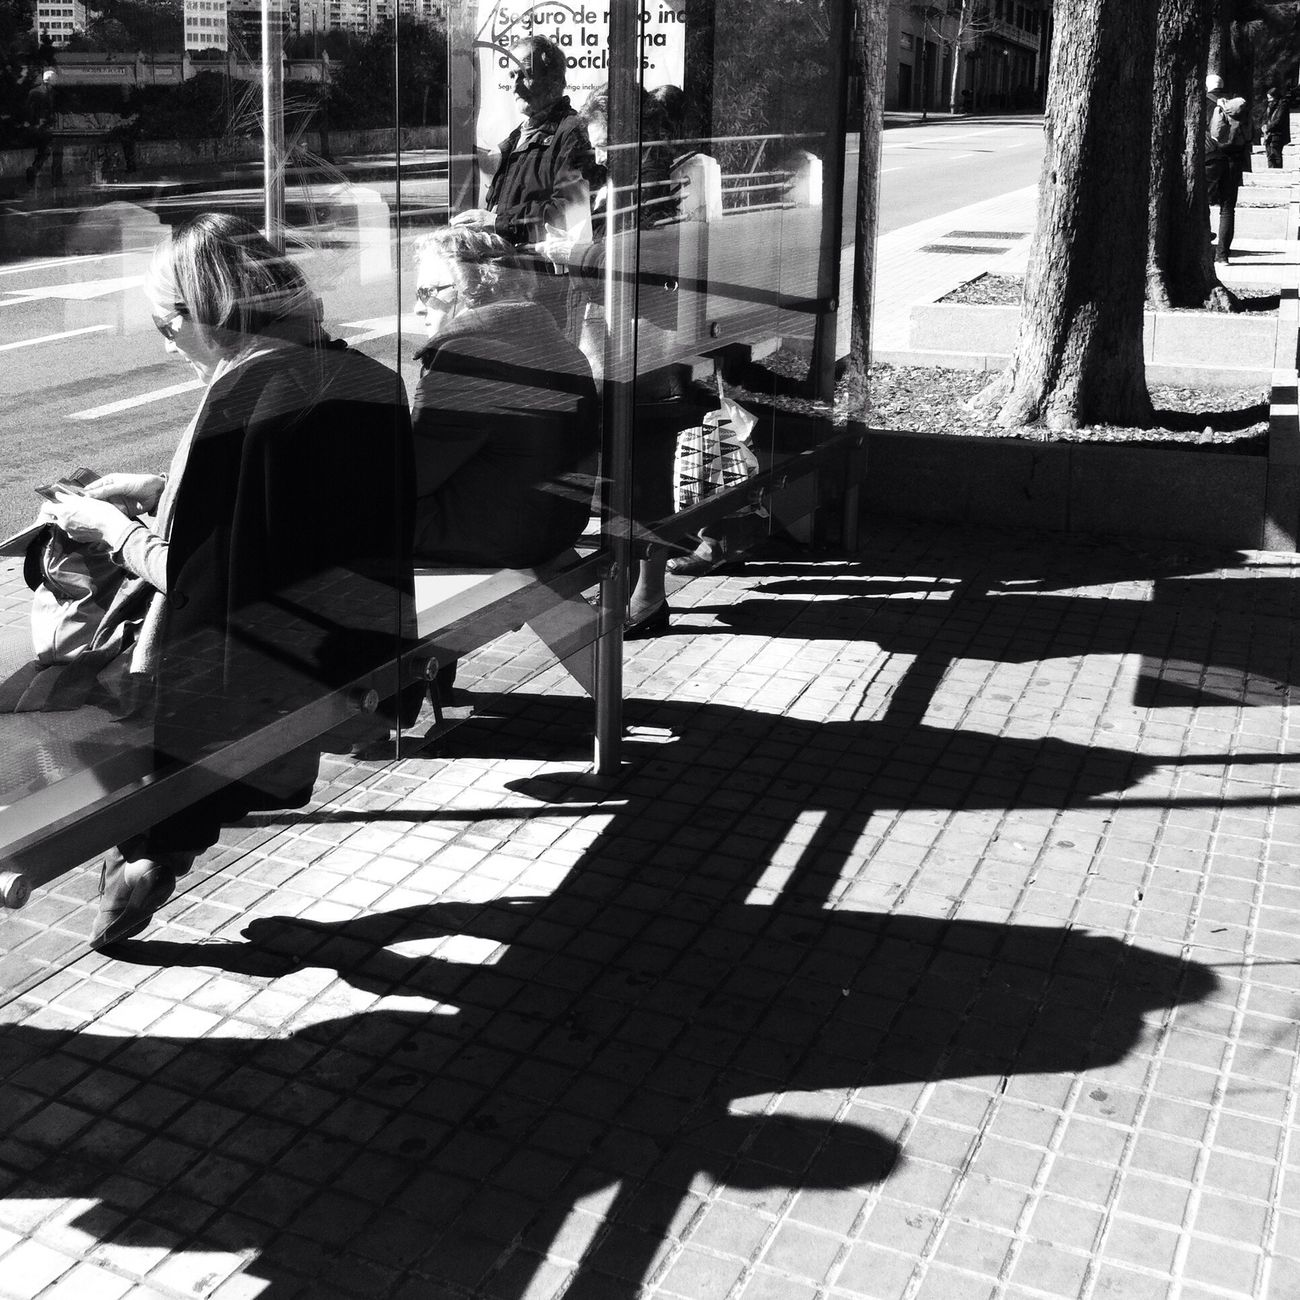 Bus stop / Streetphotography Streetphoto_bw Blackandwhite AMPt_community